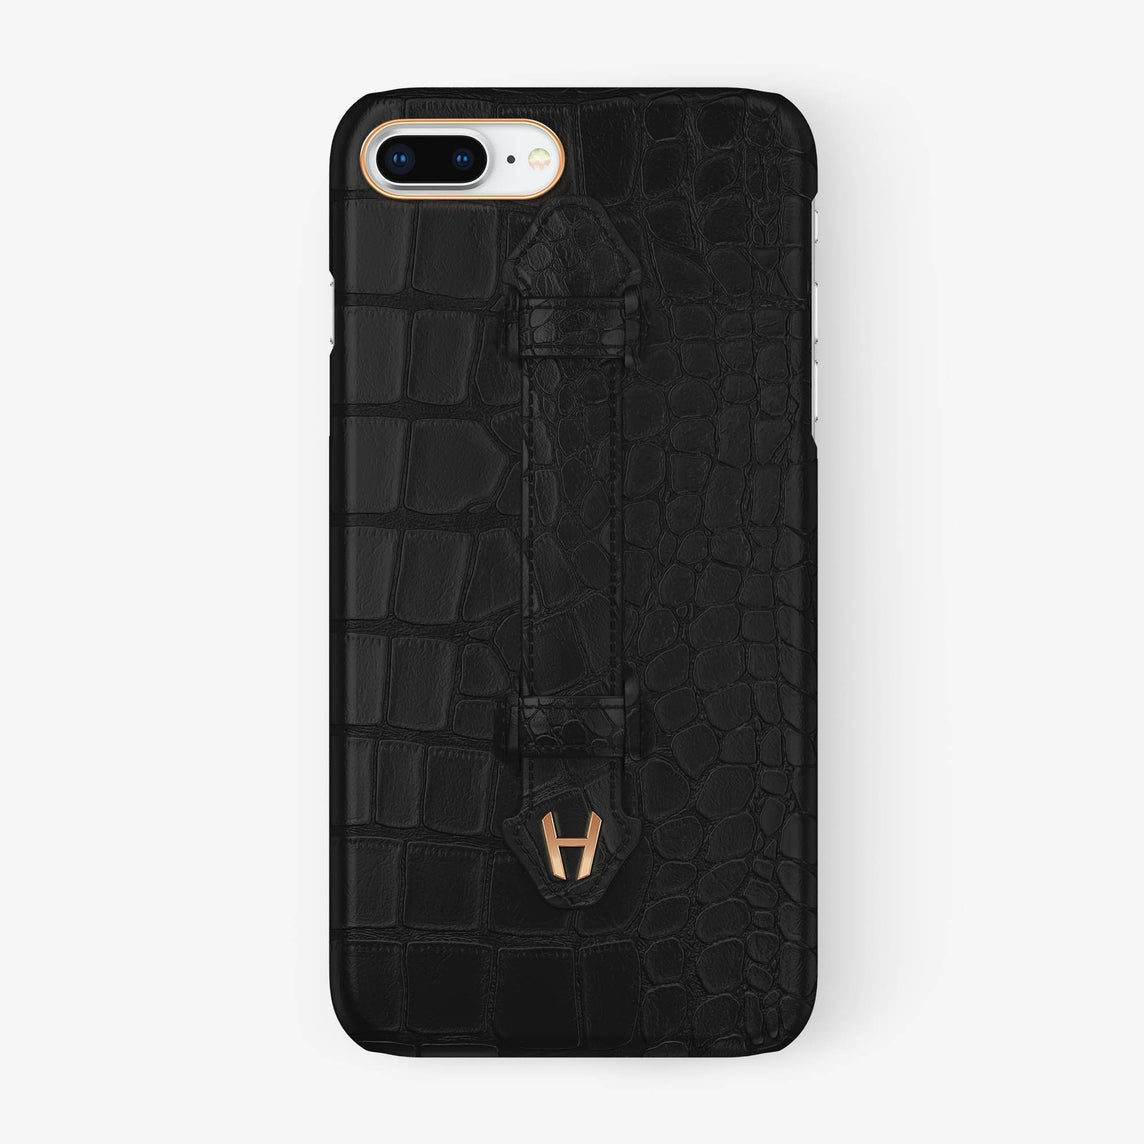 Alligator Finger Case iPhone 7/8 Plus | Phantom Black - Rose Gold